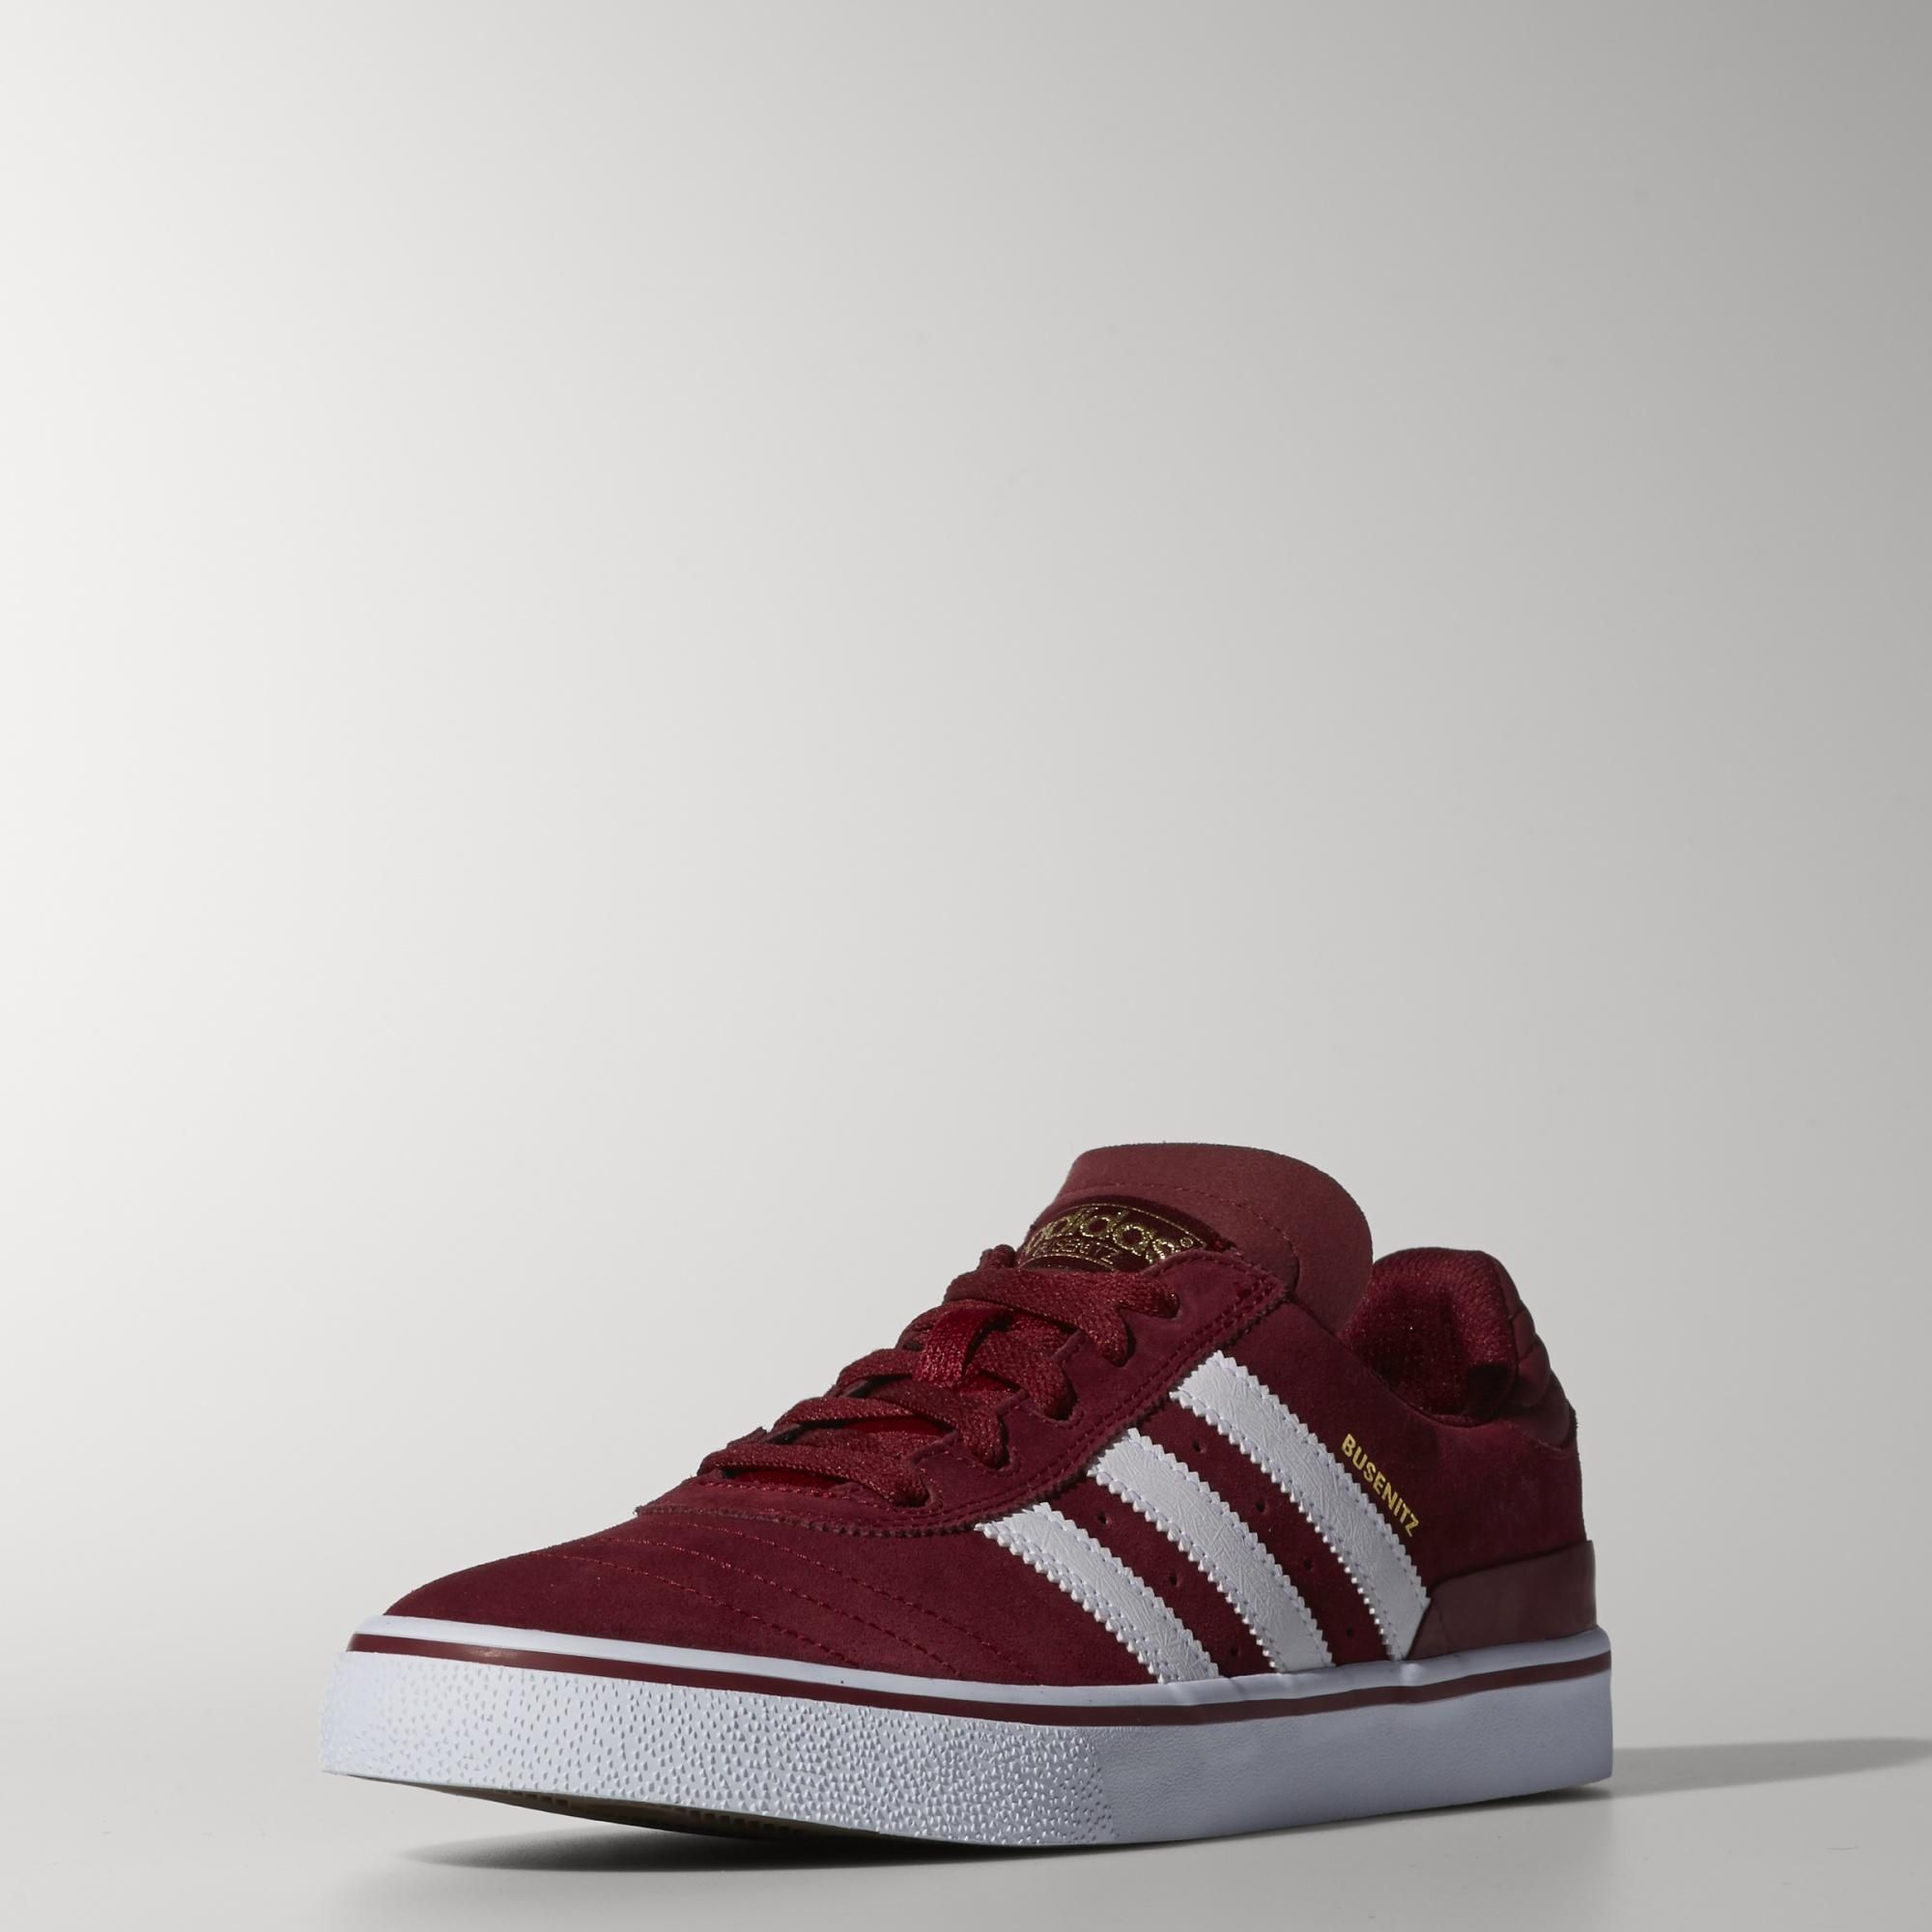 Adidas Busenitz Collegiate Burgundy Dress Shoes Formal Burgundy ... ae556f9a7